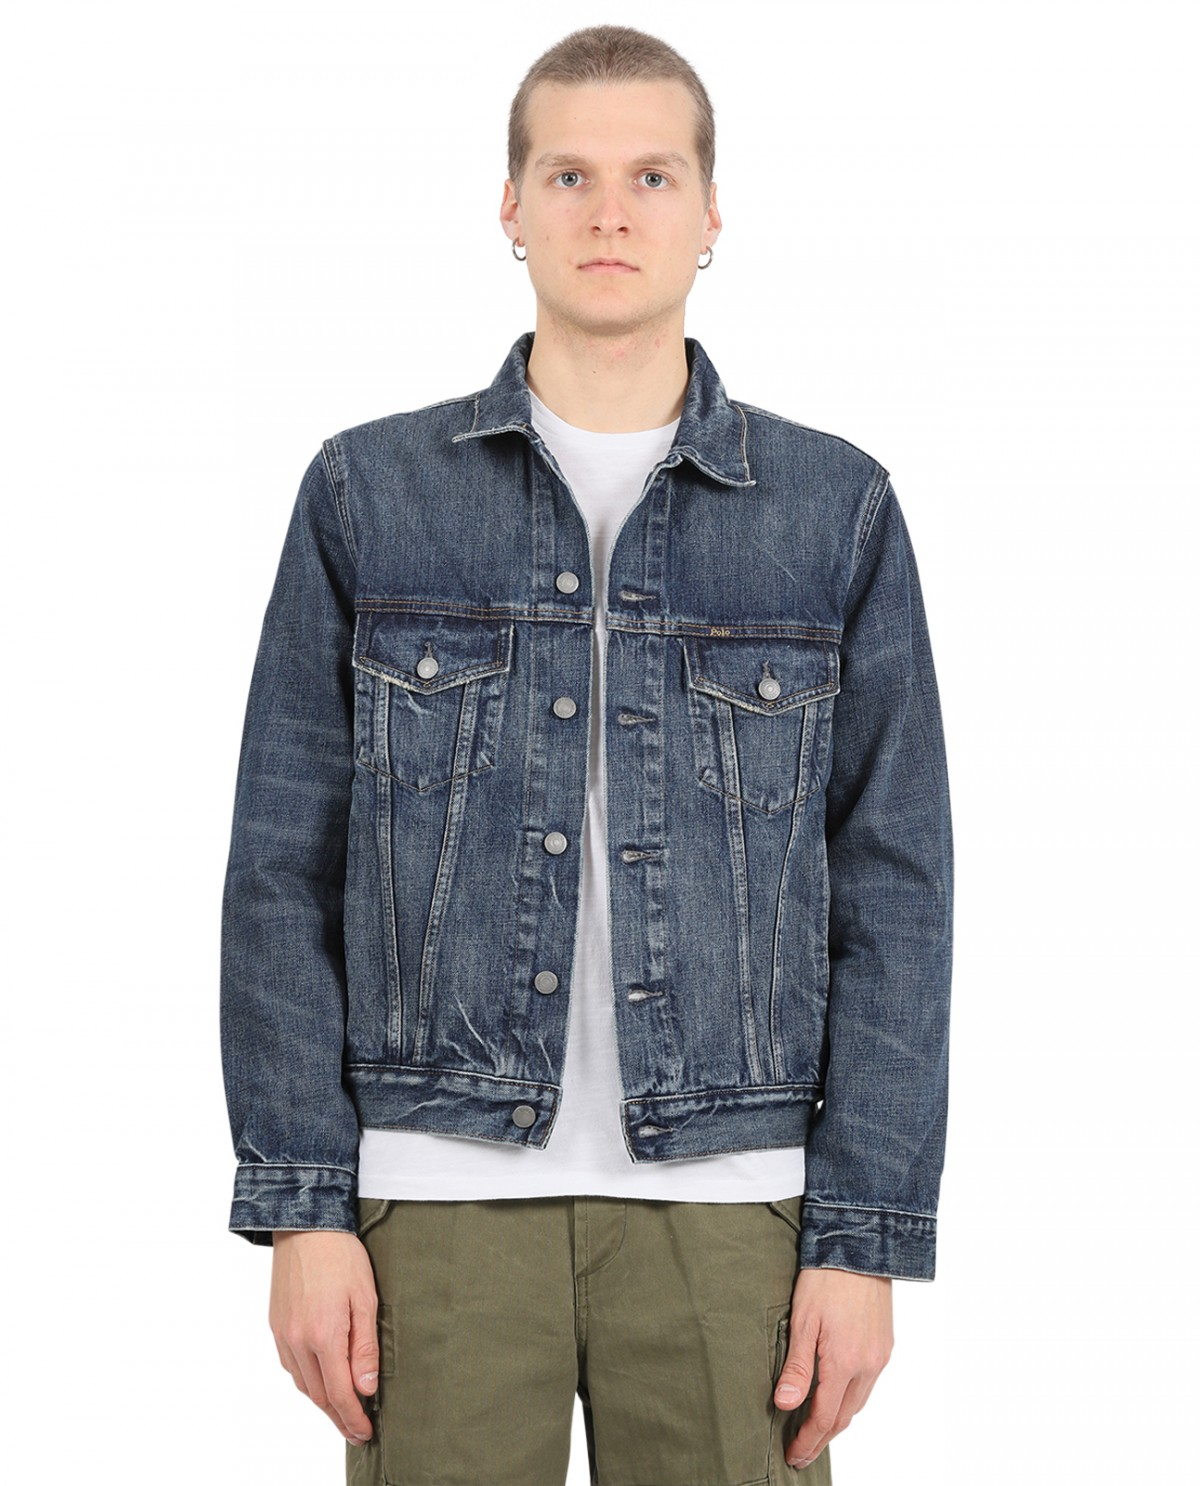 Thom Browne navy and red bomber